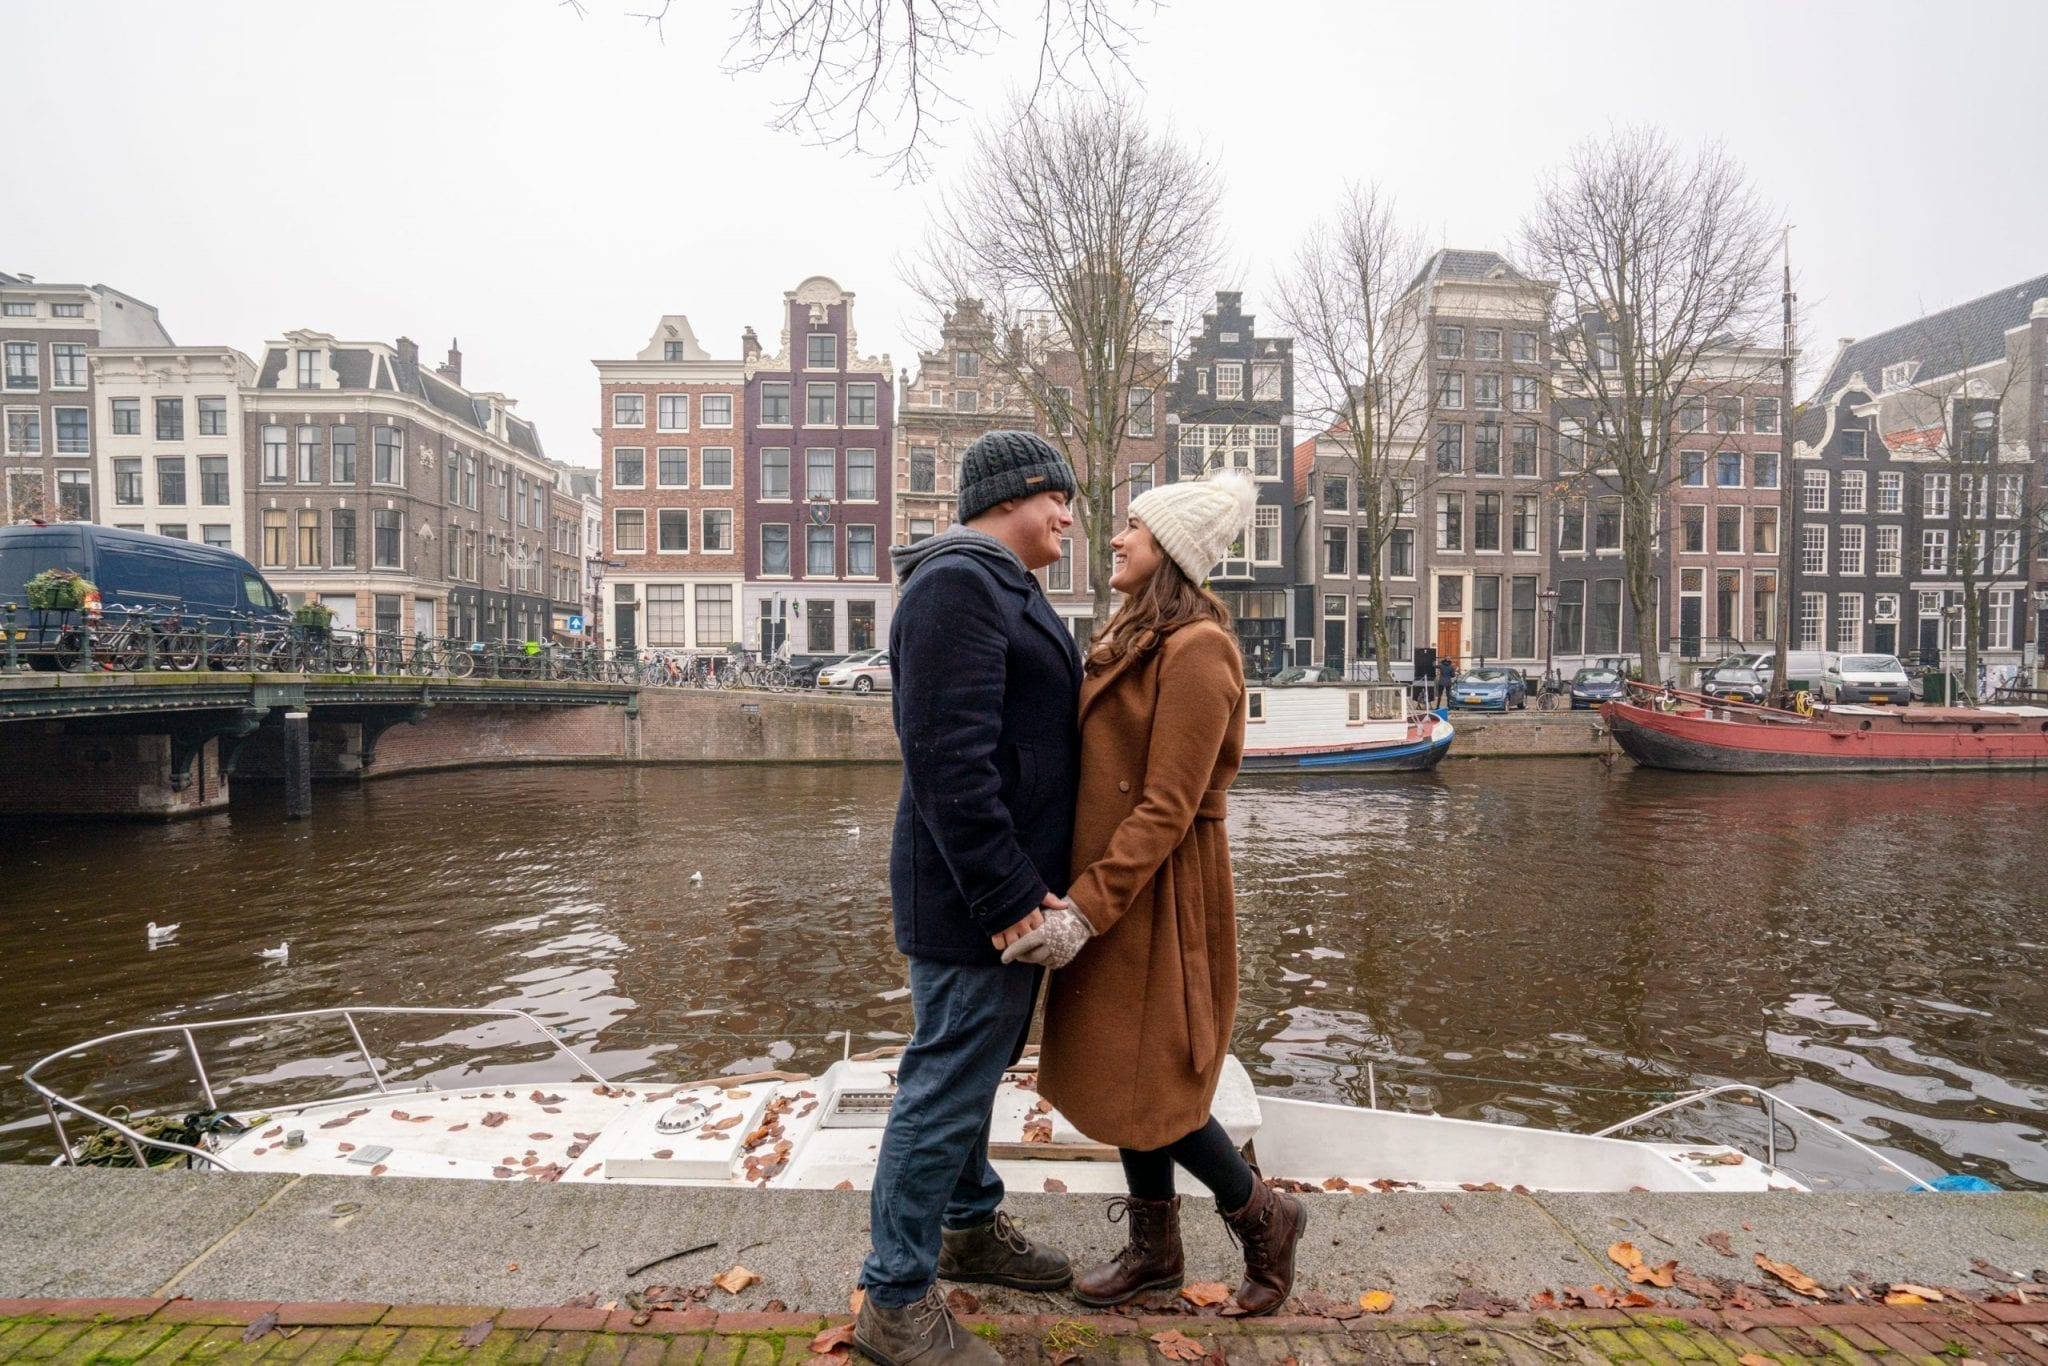 Kate Storm and Jeremy Storm wearing winter coats on the edge of a canal in Amsterdam in December, facing each other